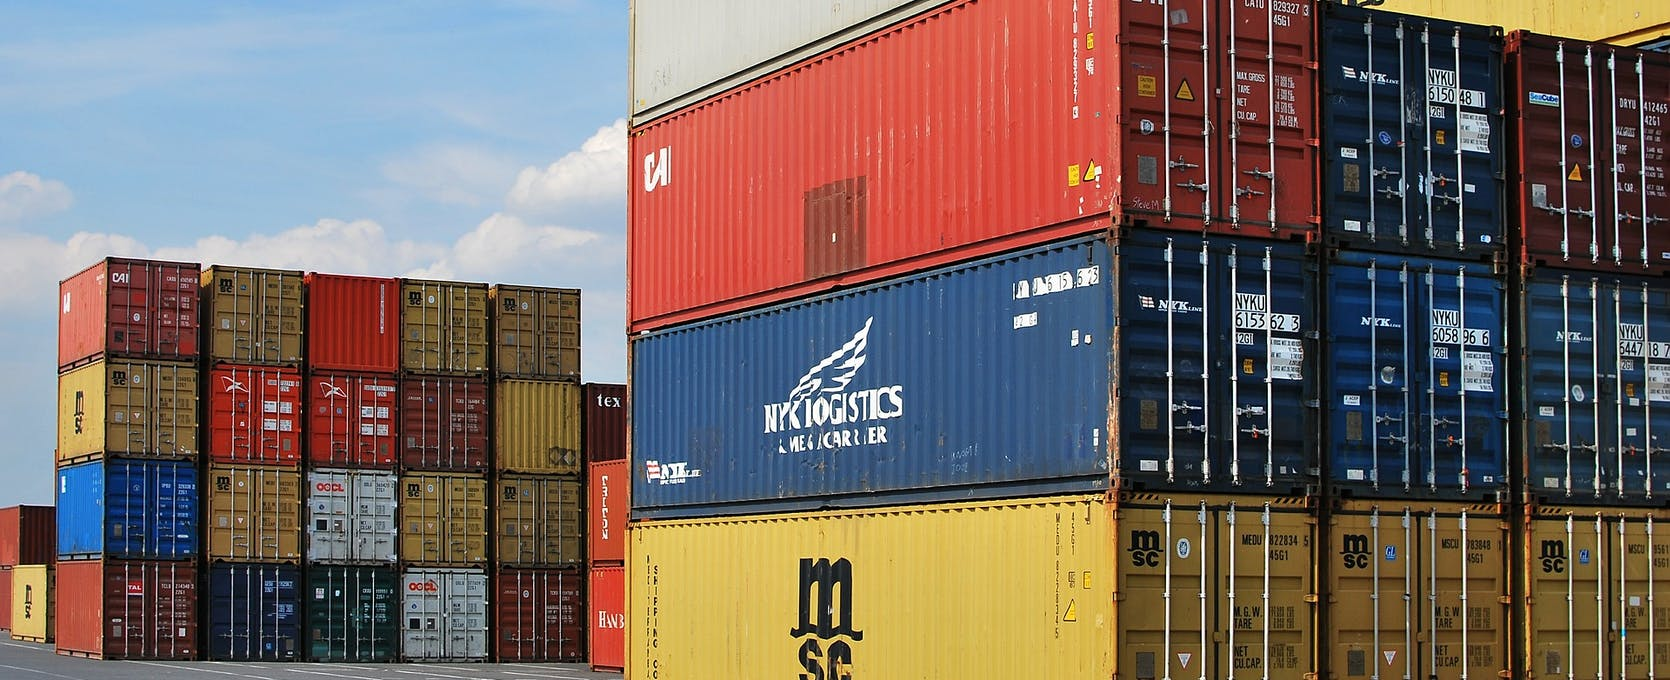 Shipping containers at the dock are a key part of the supply chain